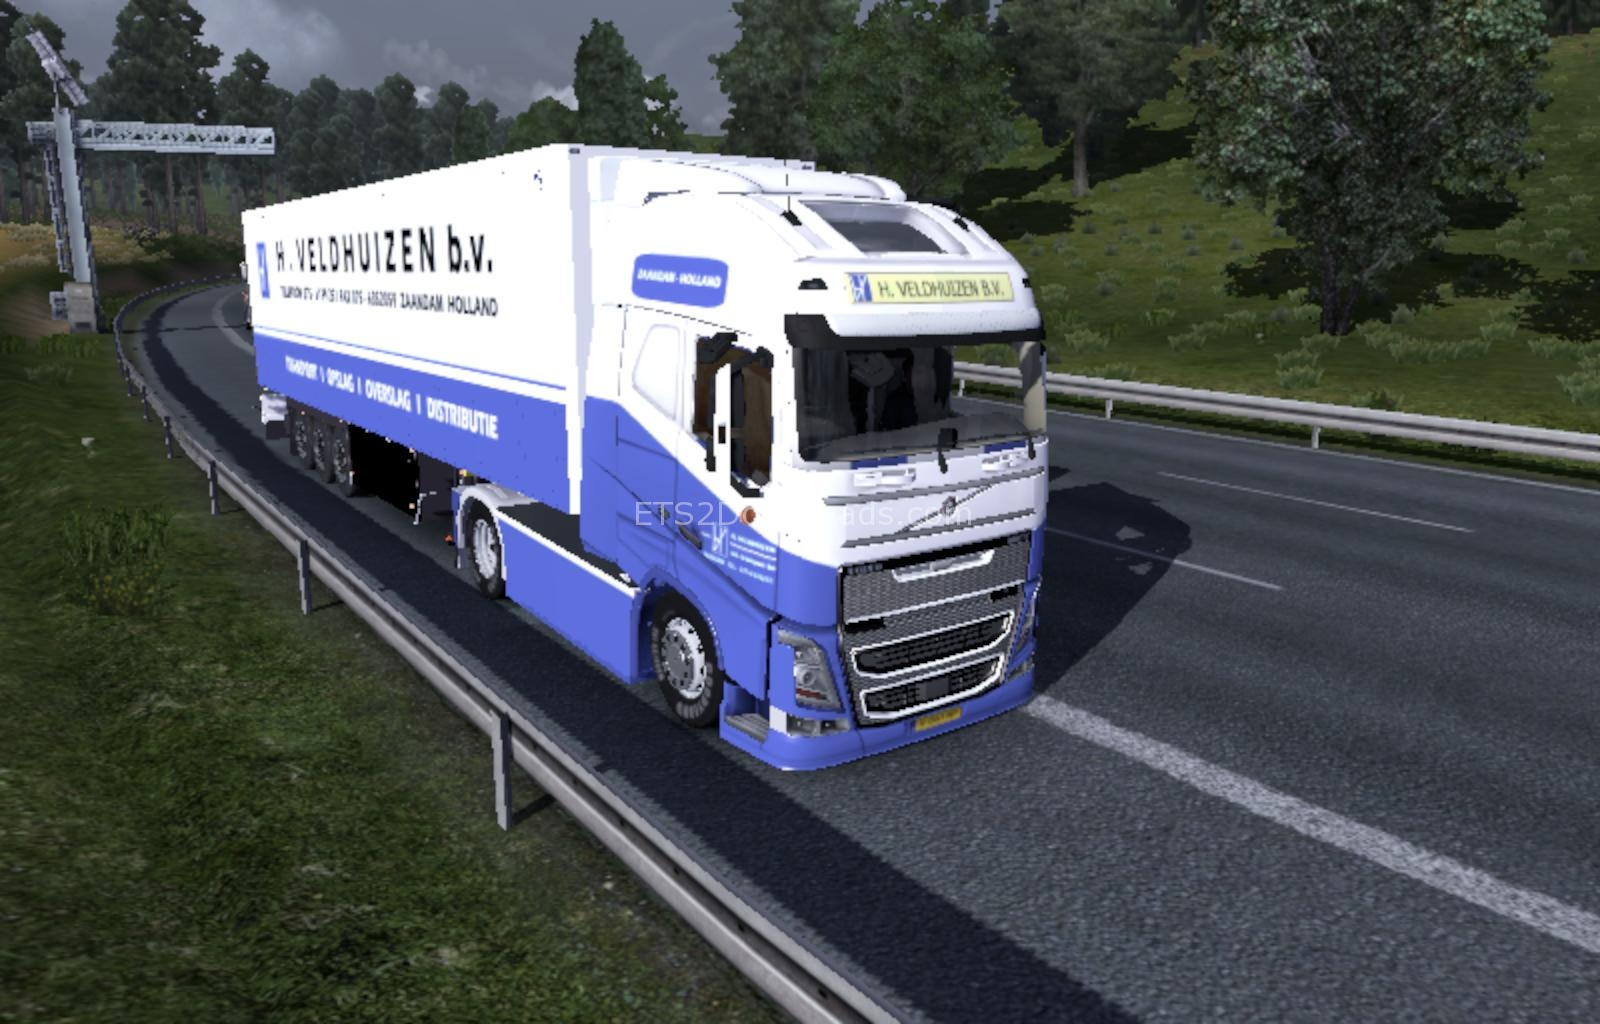 h-veldhuizen-bv-skin-pack-for-volvo-and-scania-1